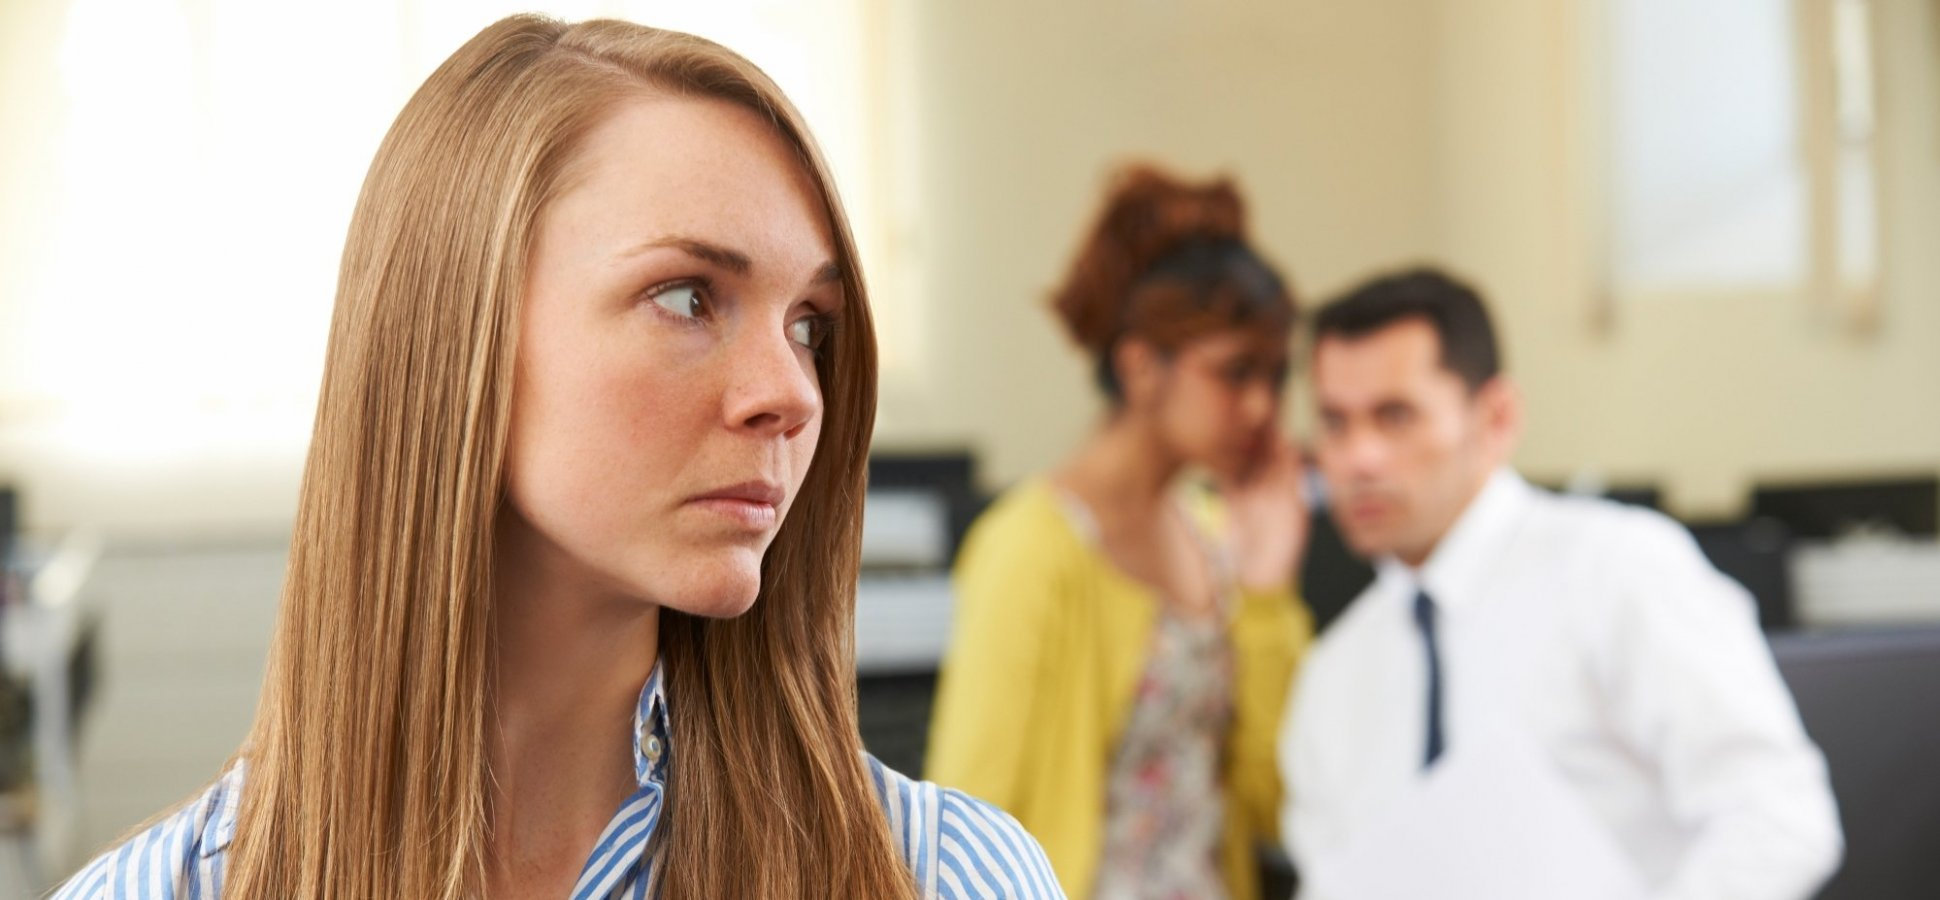 Bullying in the Workplace Is More Common Than You Might Think. Here's What to Do About It